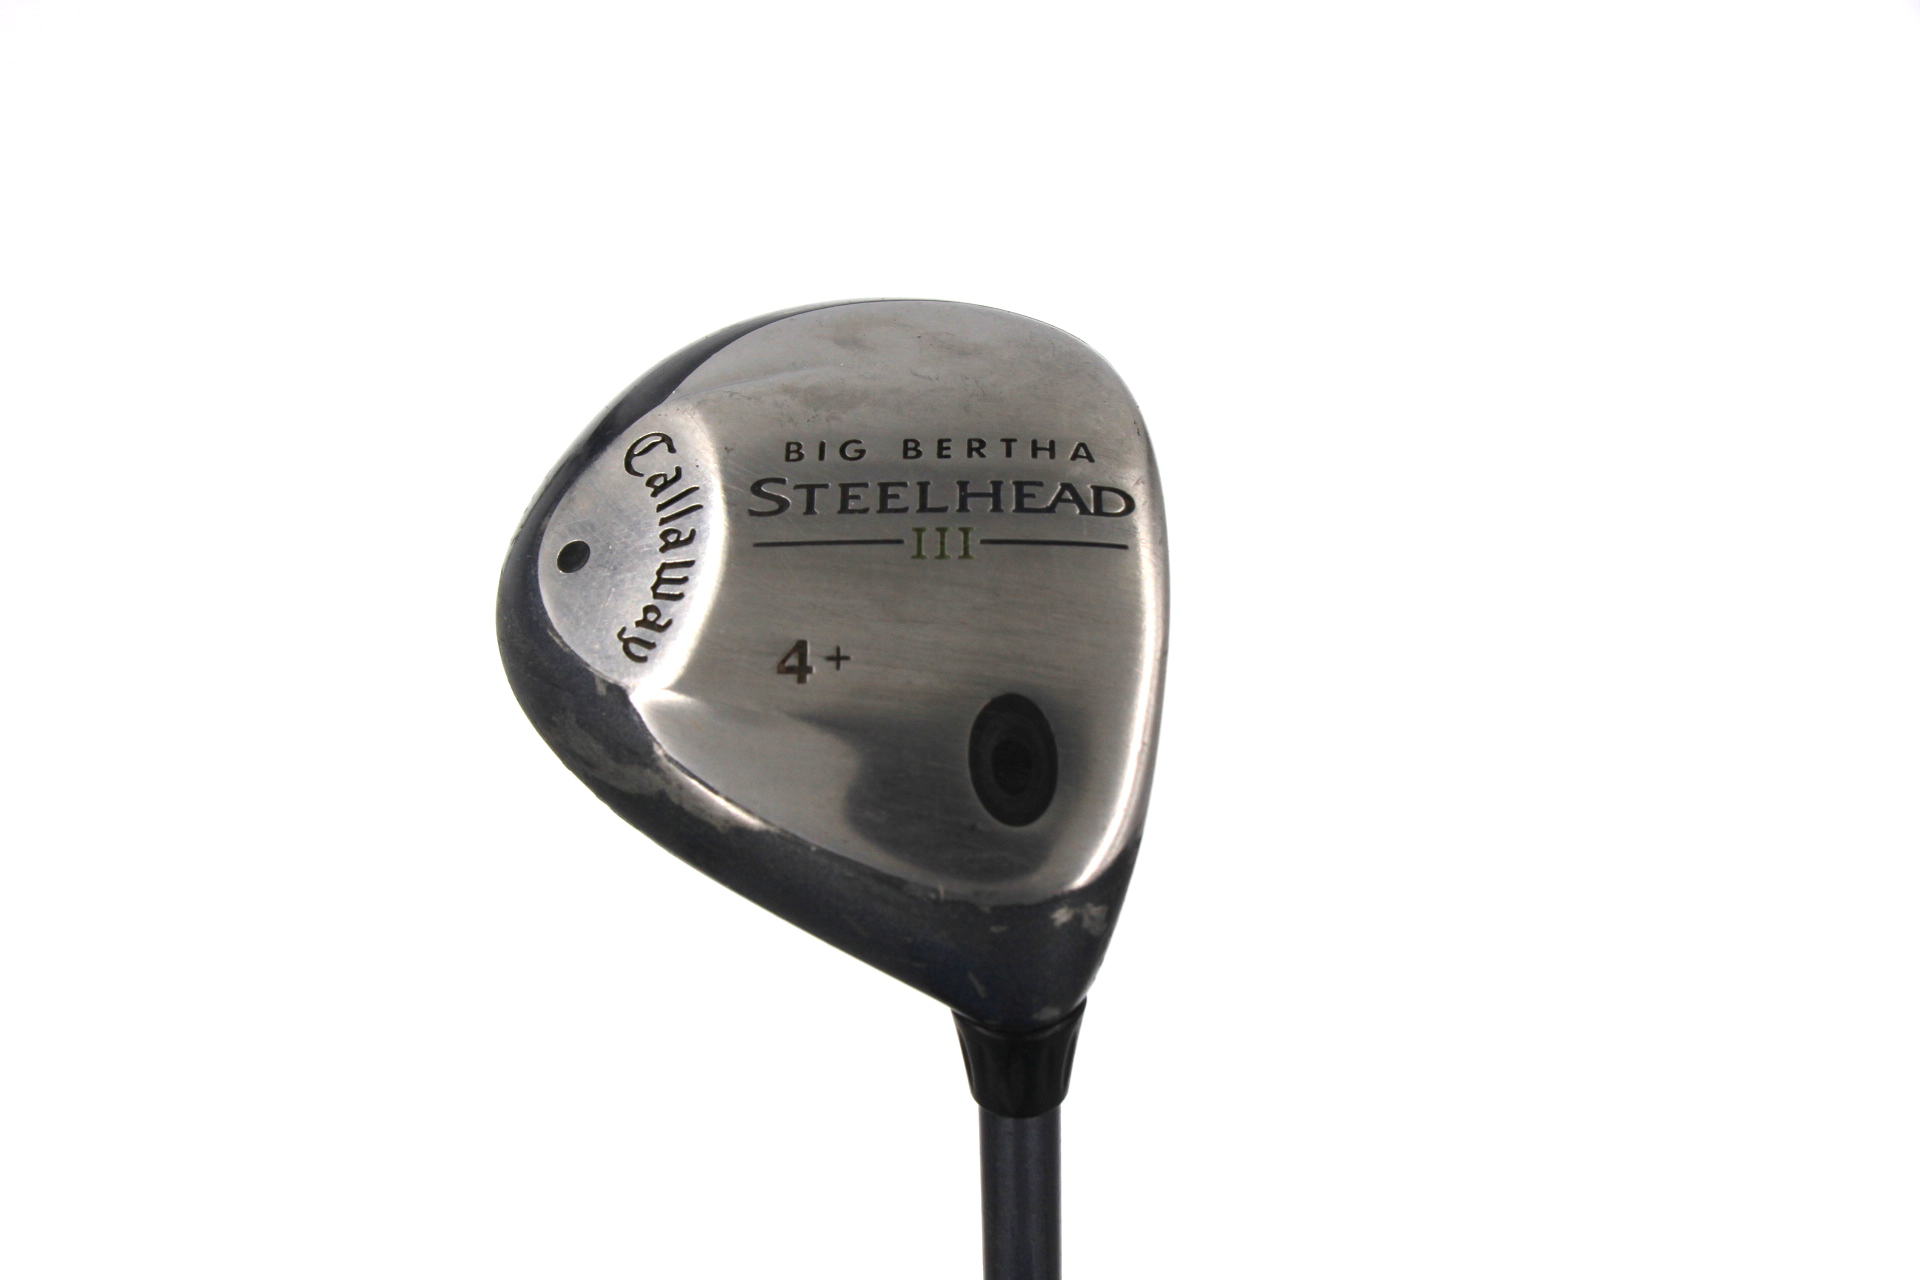 Callaway Big Bertha Steelhead III 4W